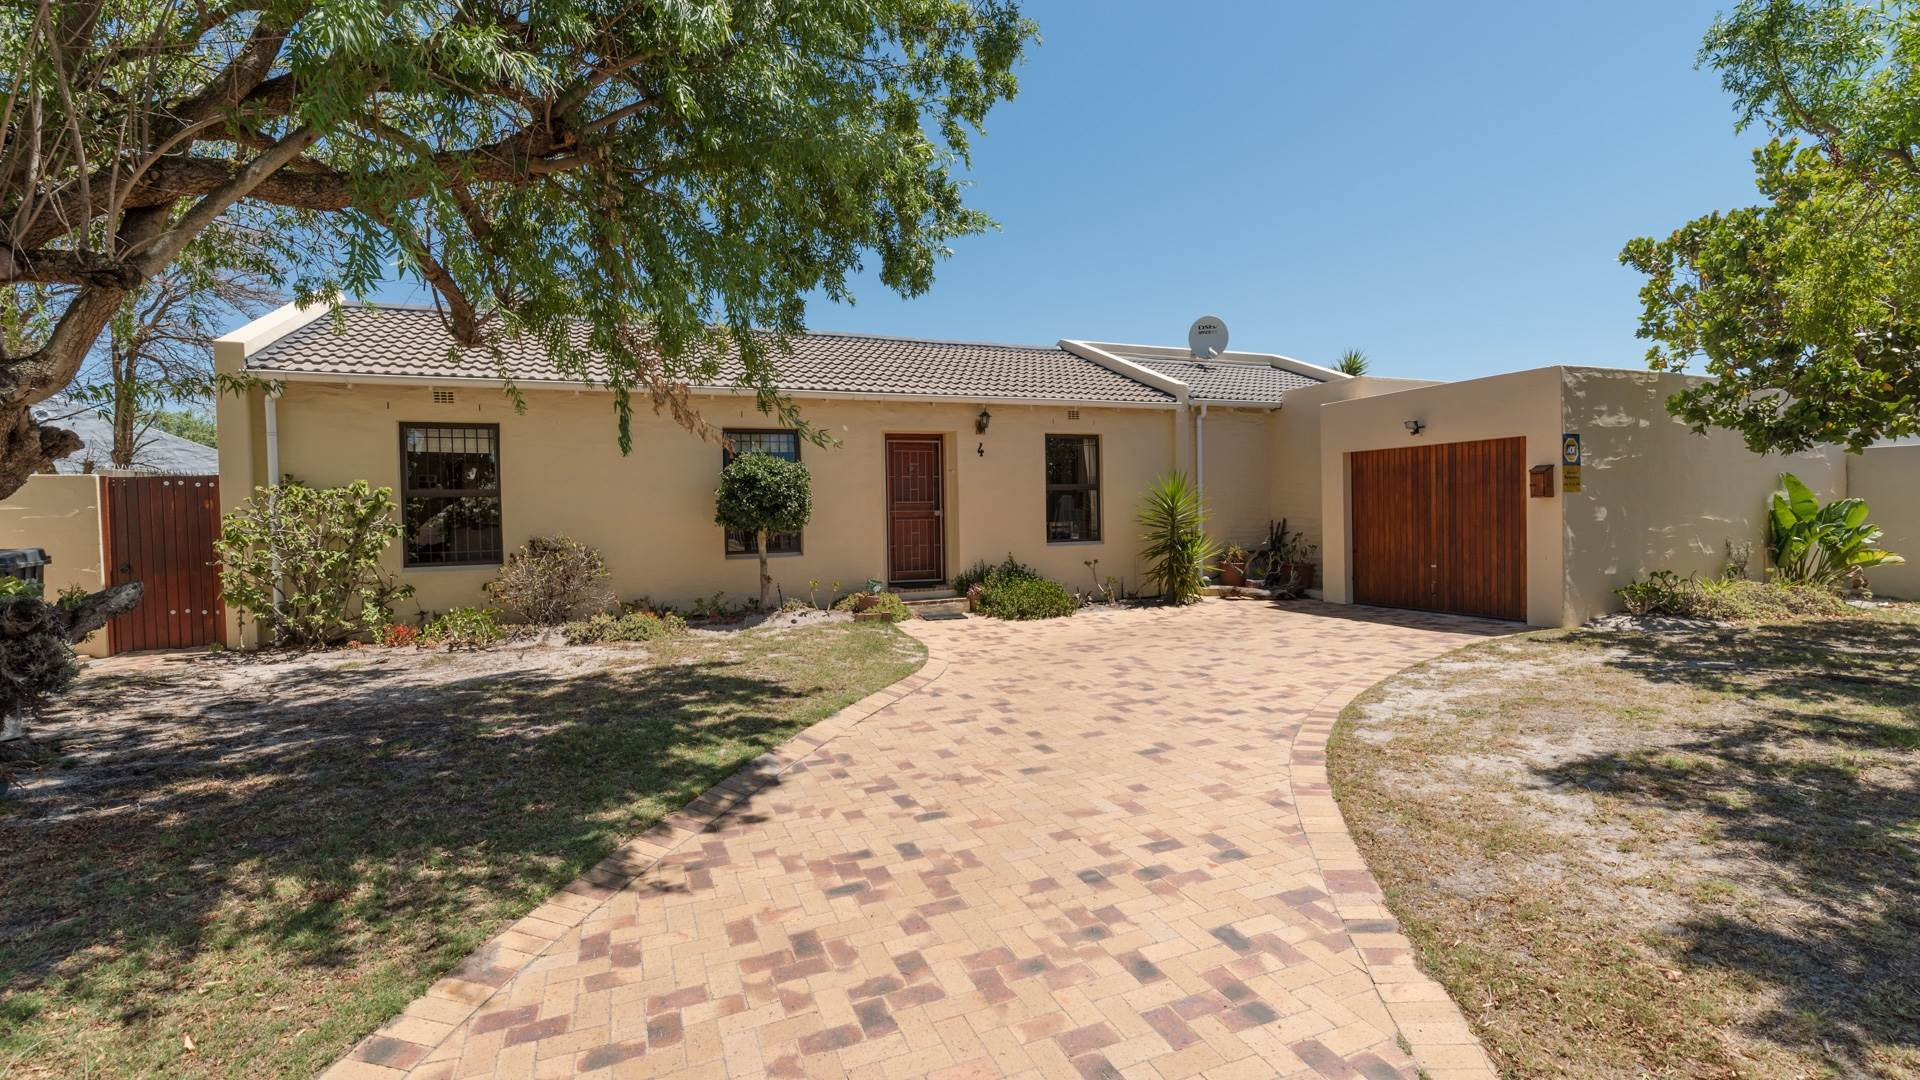 3 BedroomHouse For Sale In Edgemead